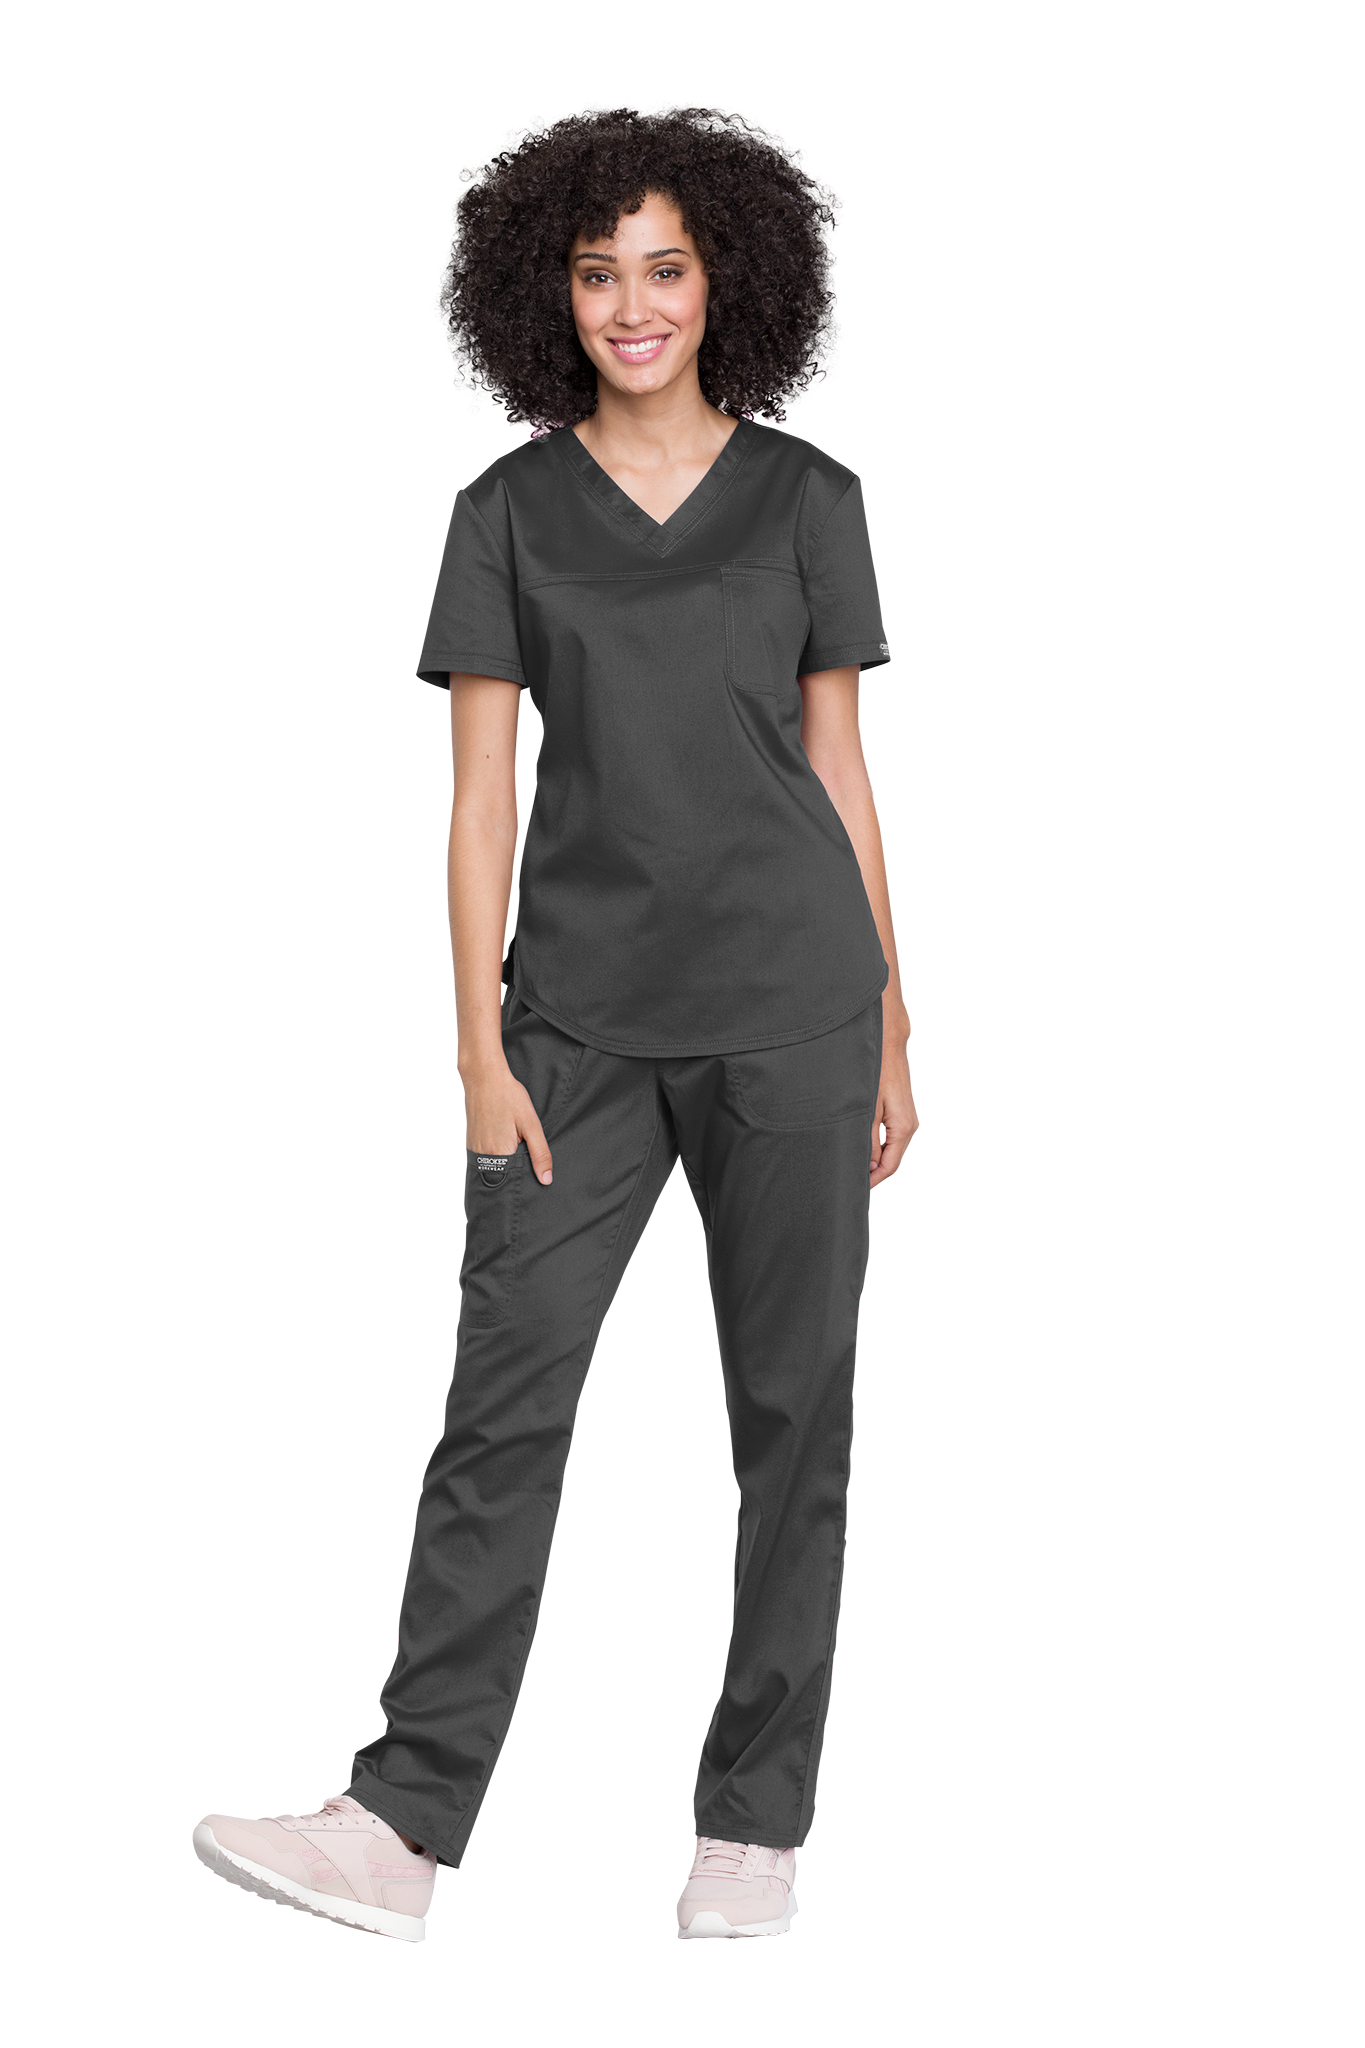 Cherokee Revolution WW657 V-Neck O.R. Top